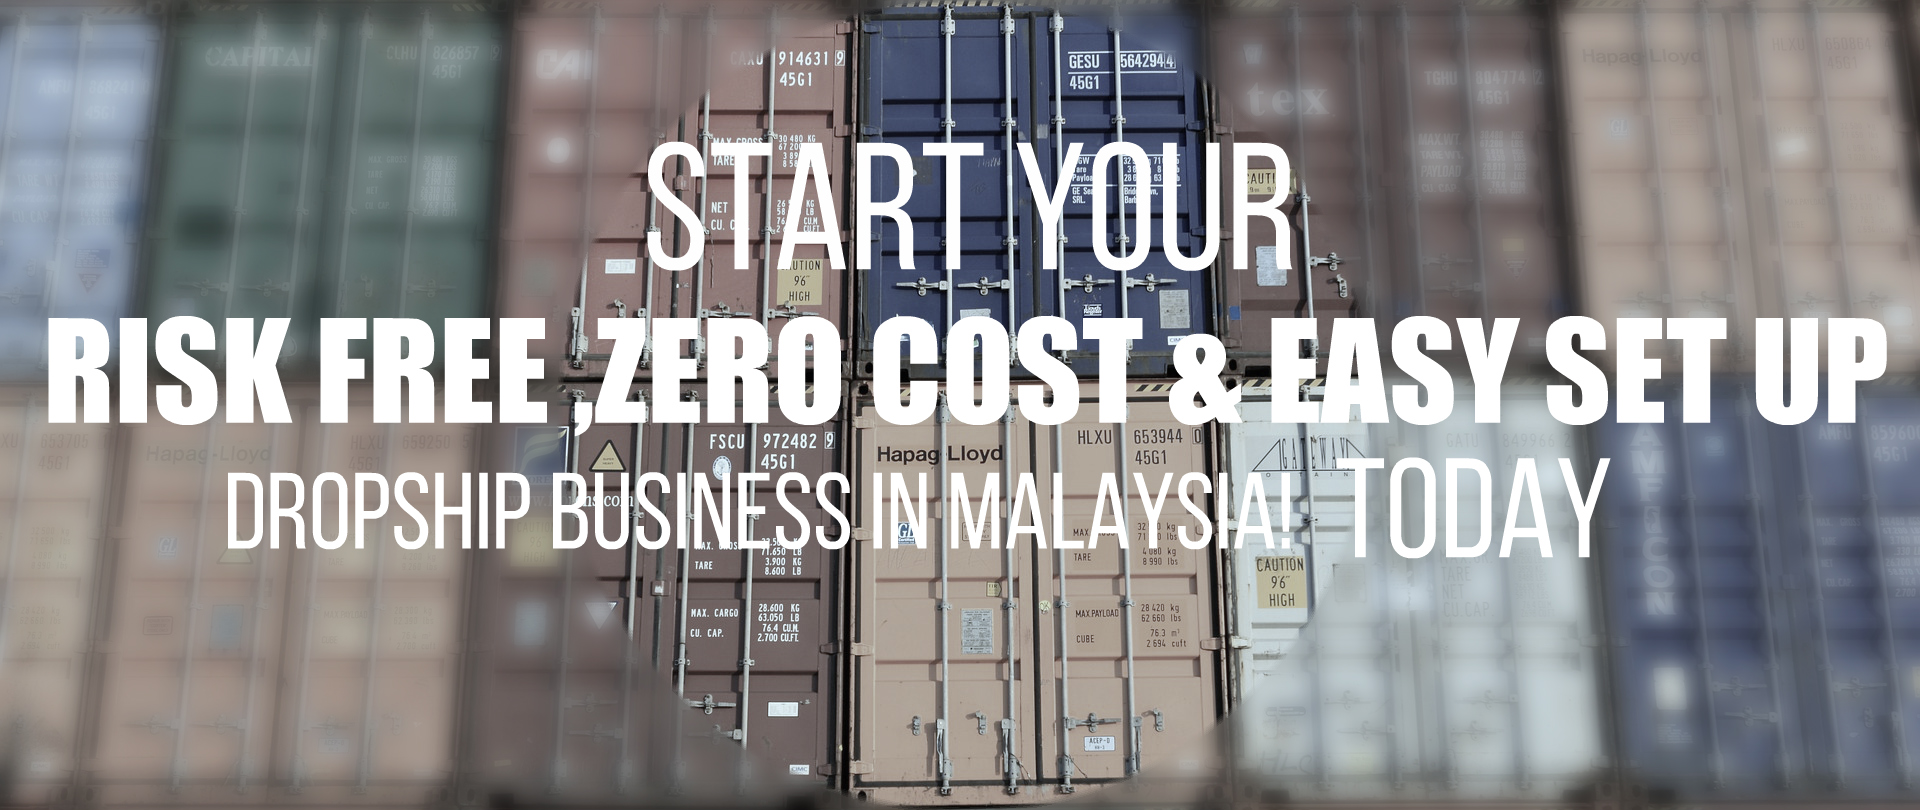 malaysia dropship business start up